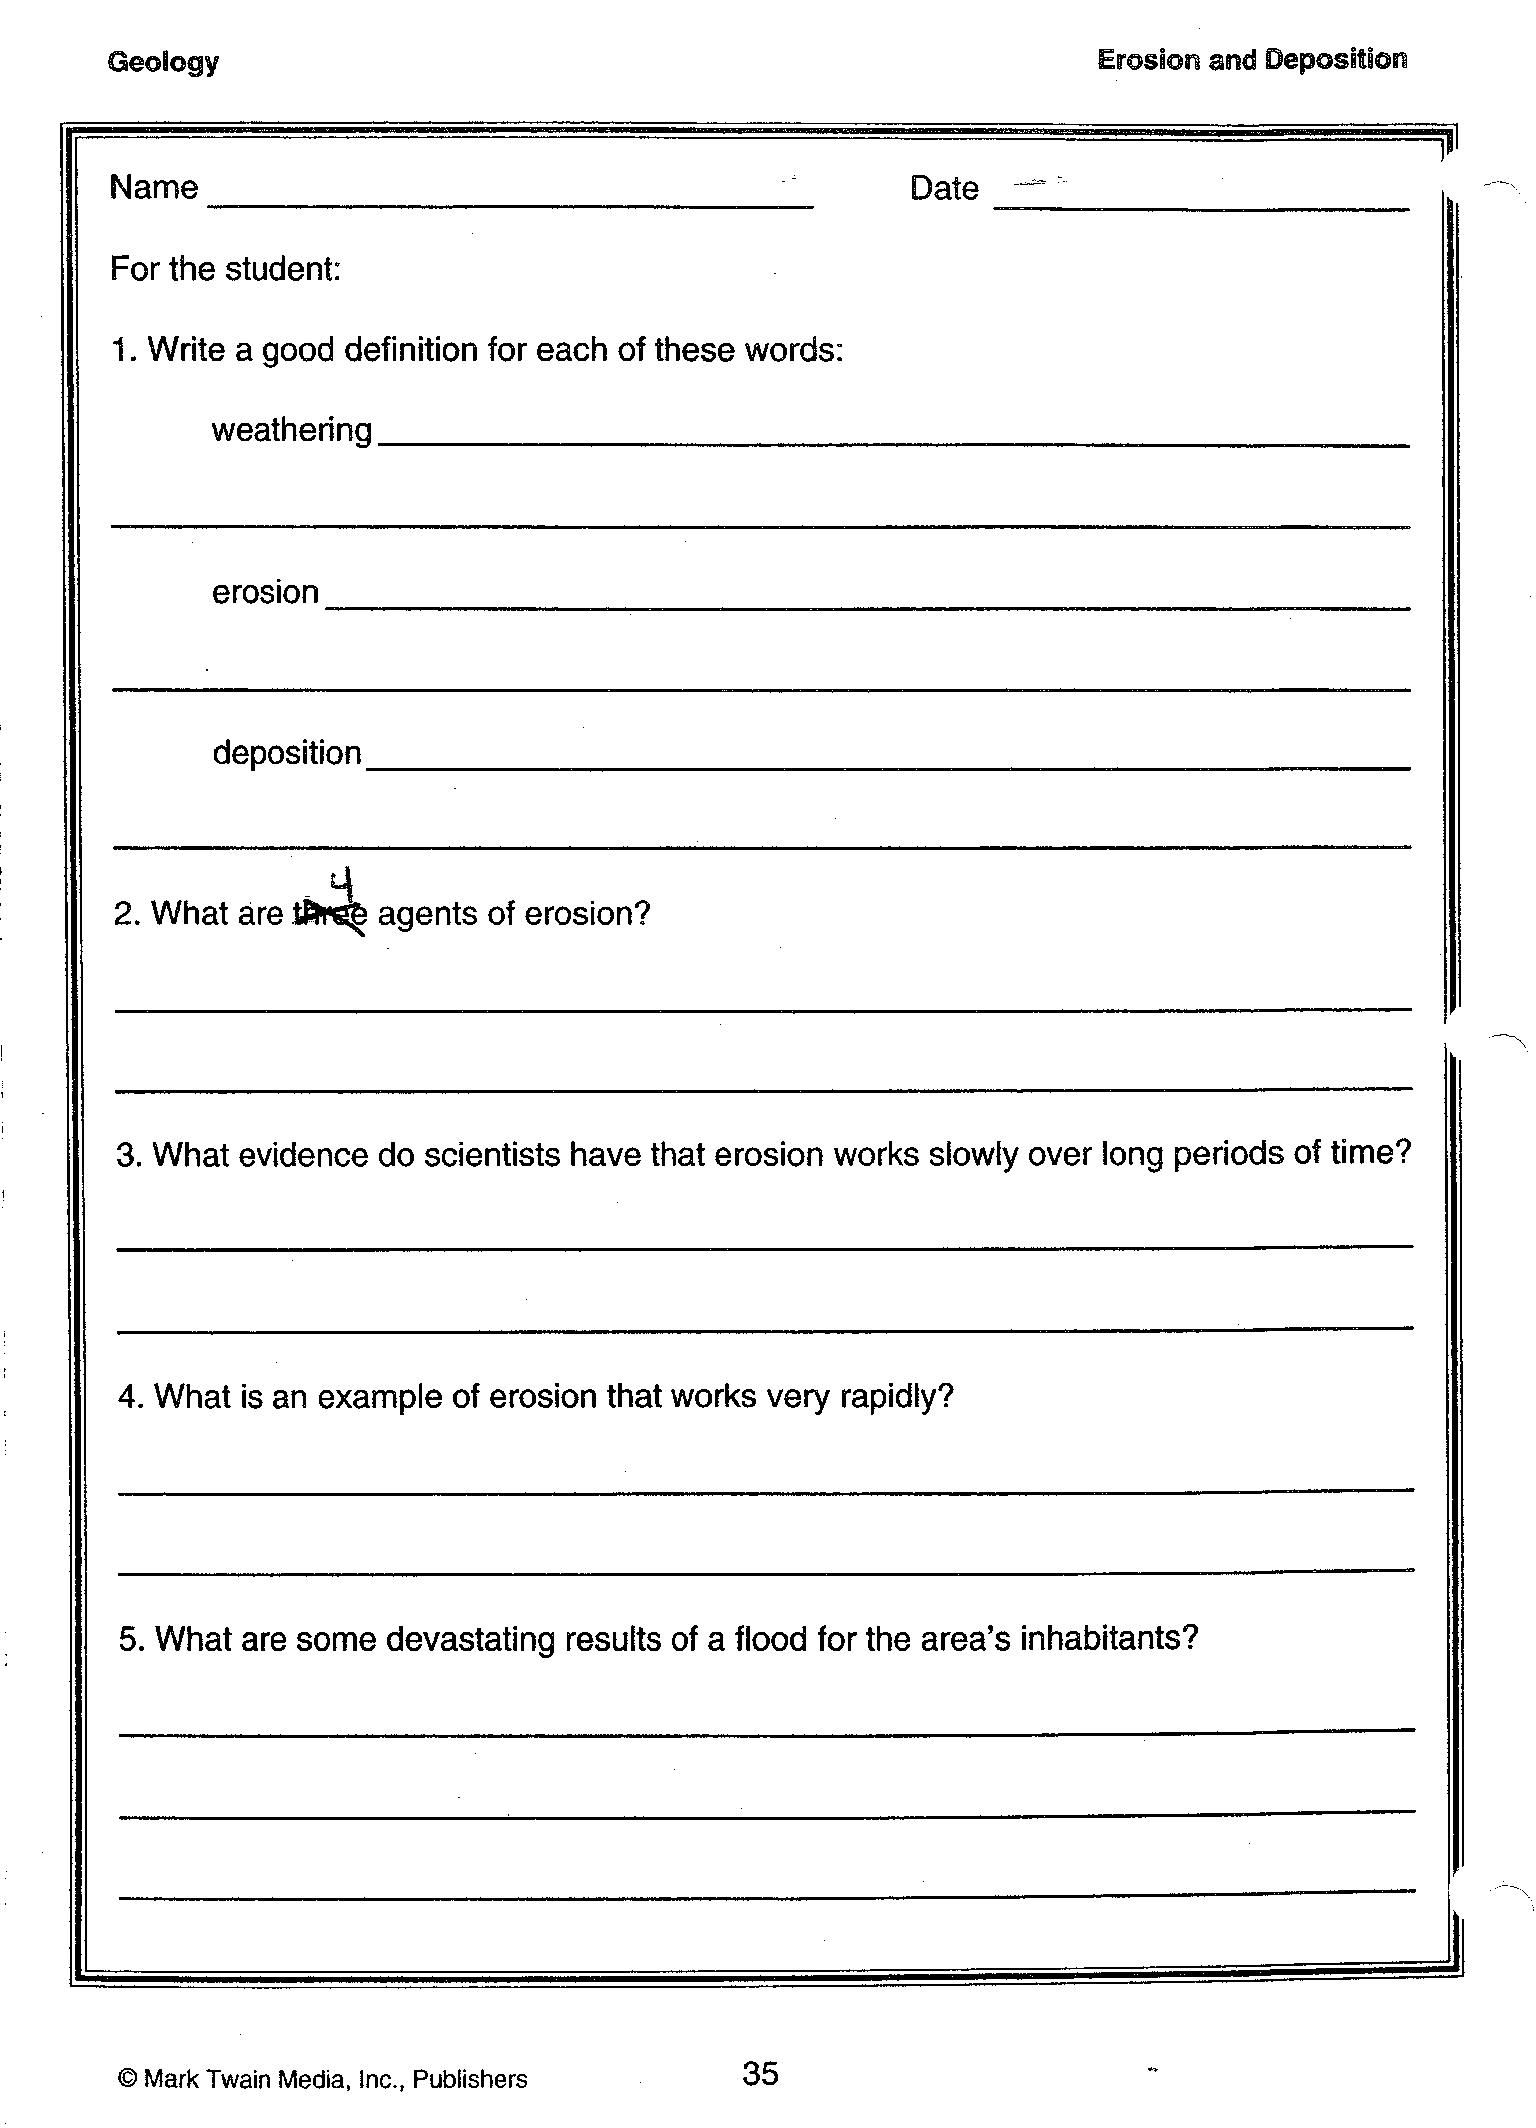 Free Printable Weathering And Erosion Worksheets